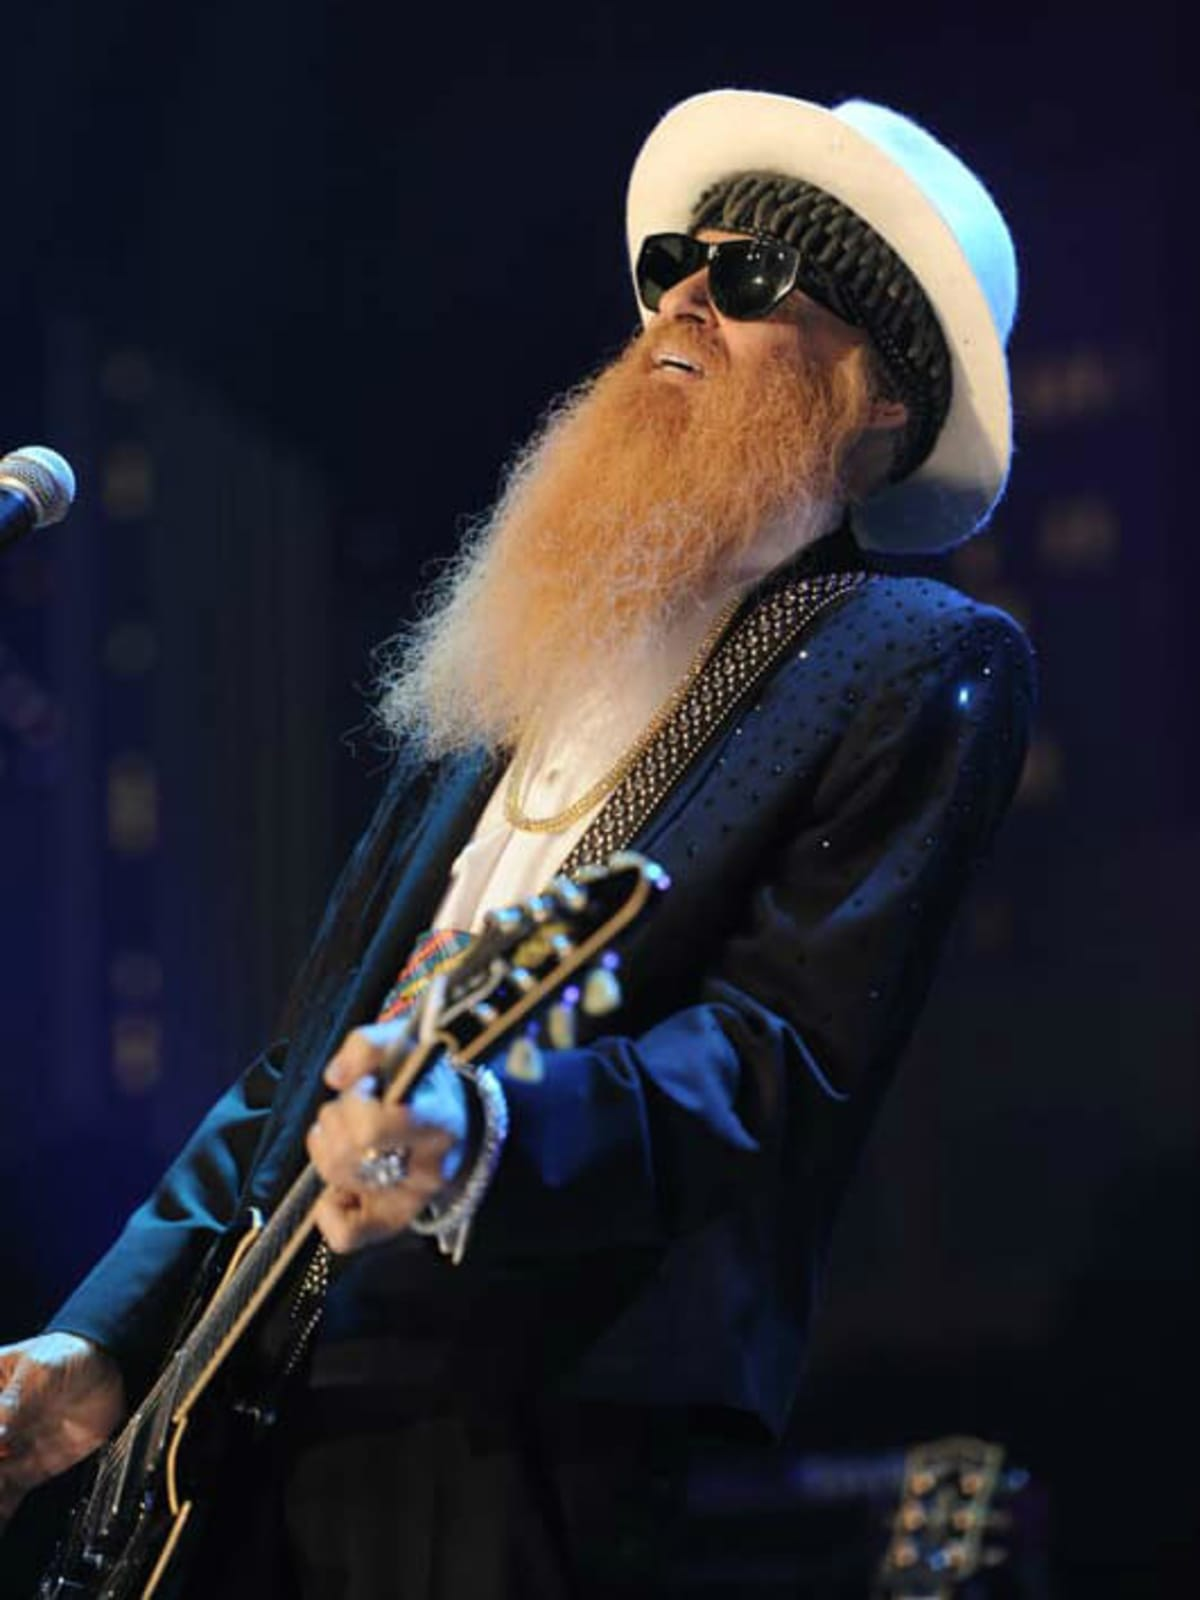 Austin City Limits Hall of Fame induction 2016 Billy Gibbons ZZ Top